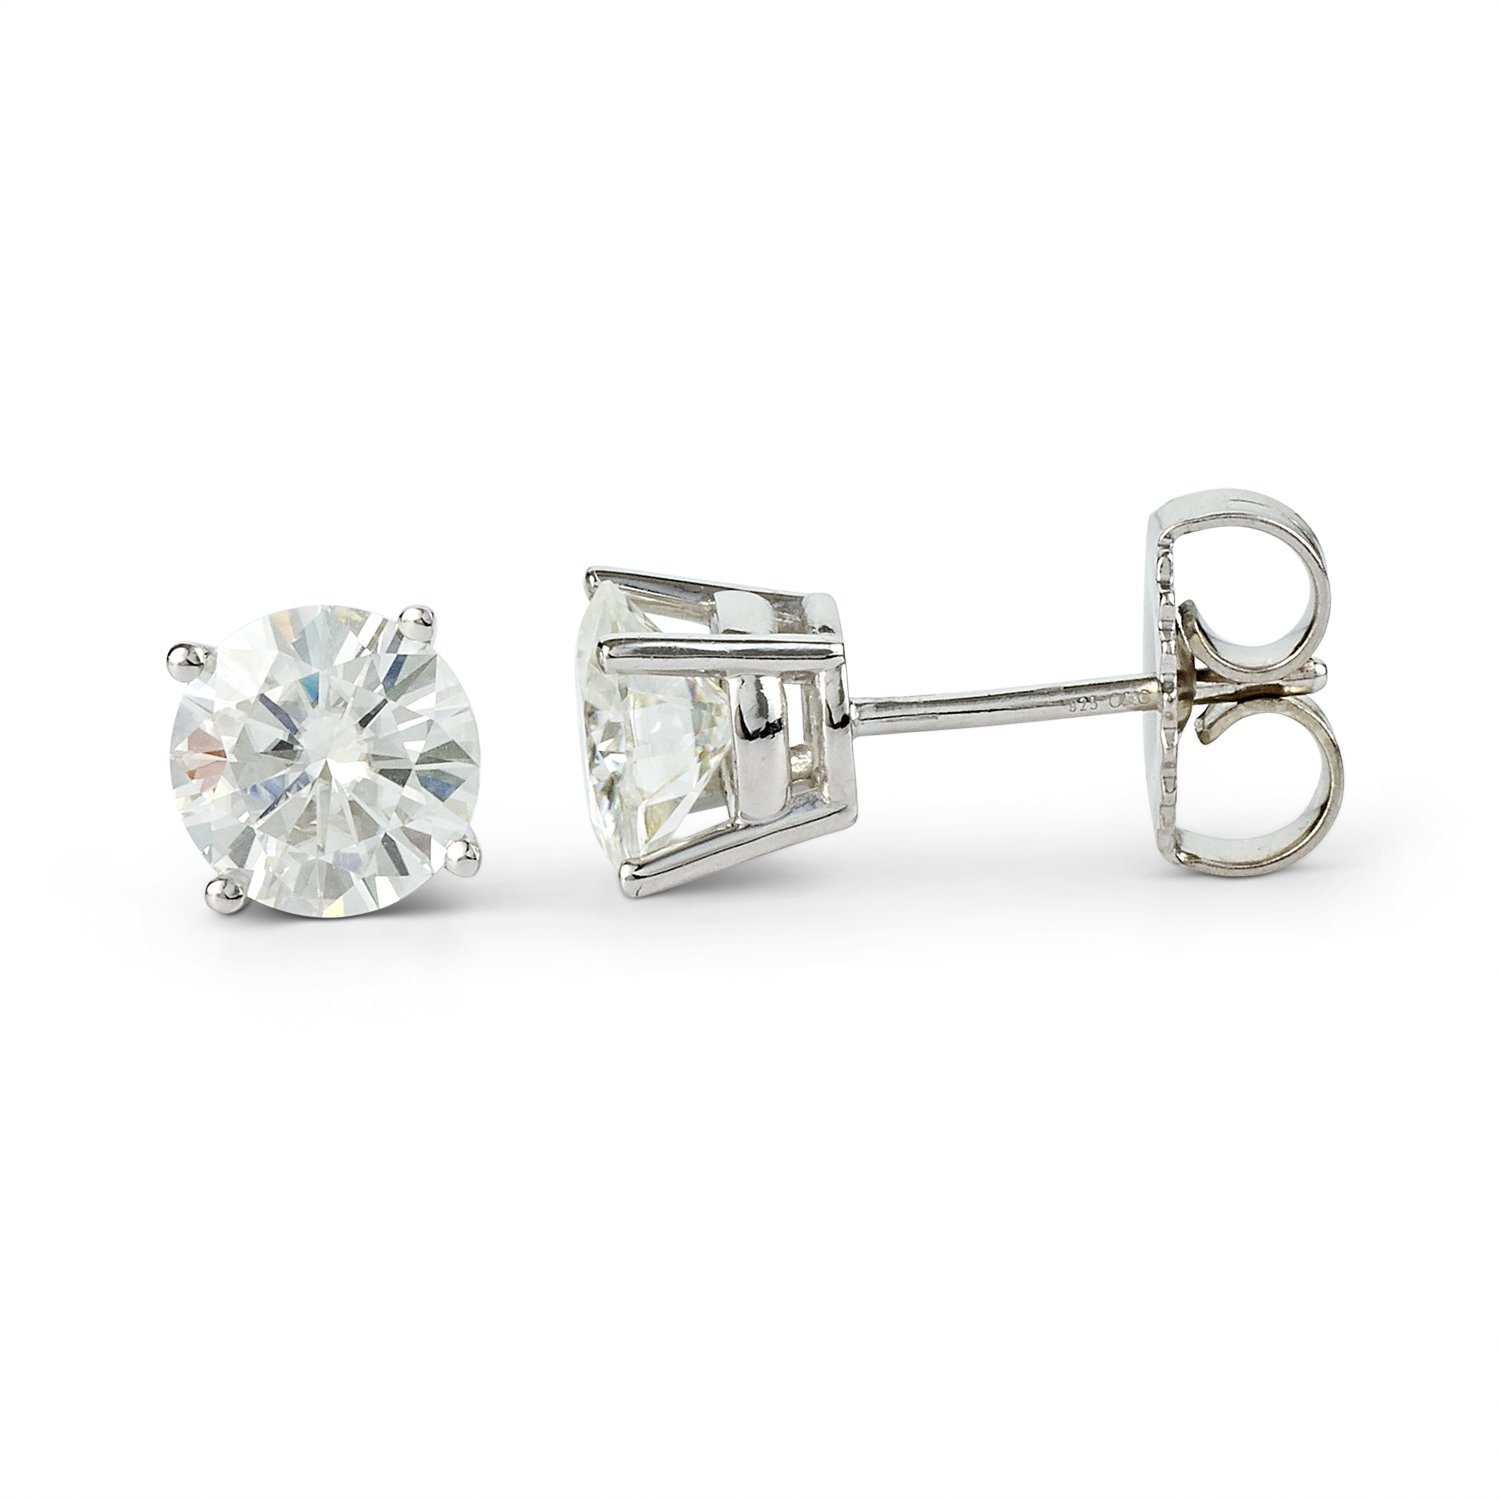 earrings moissanite gift poshclassymom and day ideas stud studs colvard valentines diamond charles